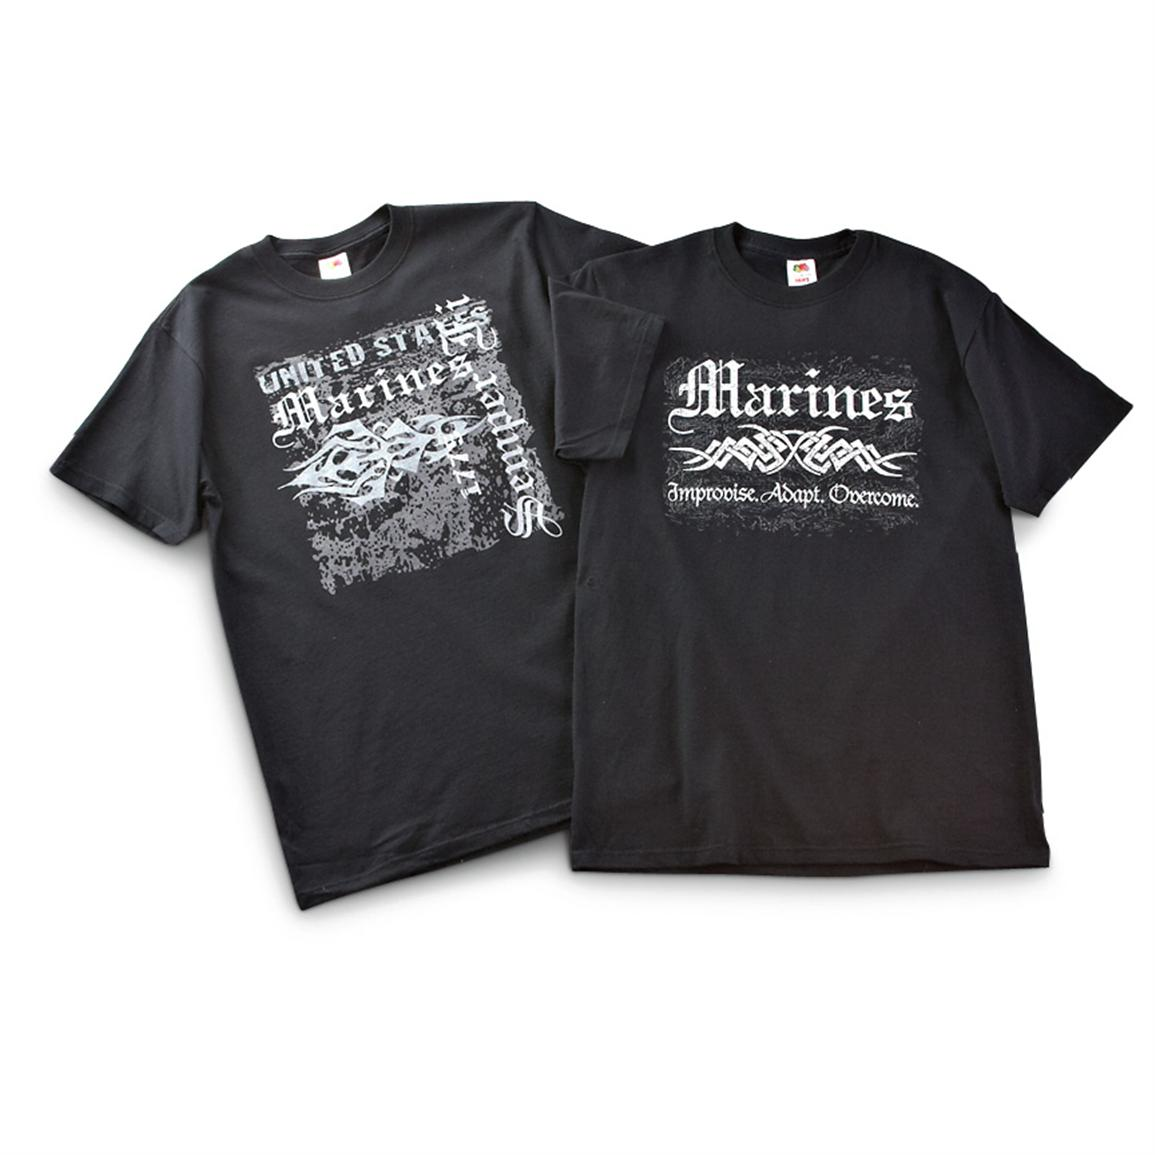 2 Tribal Military Branch T-shirts, Black